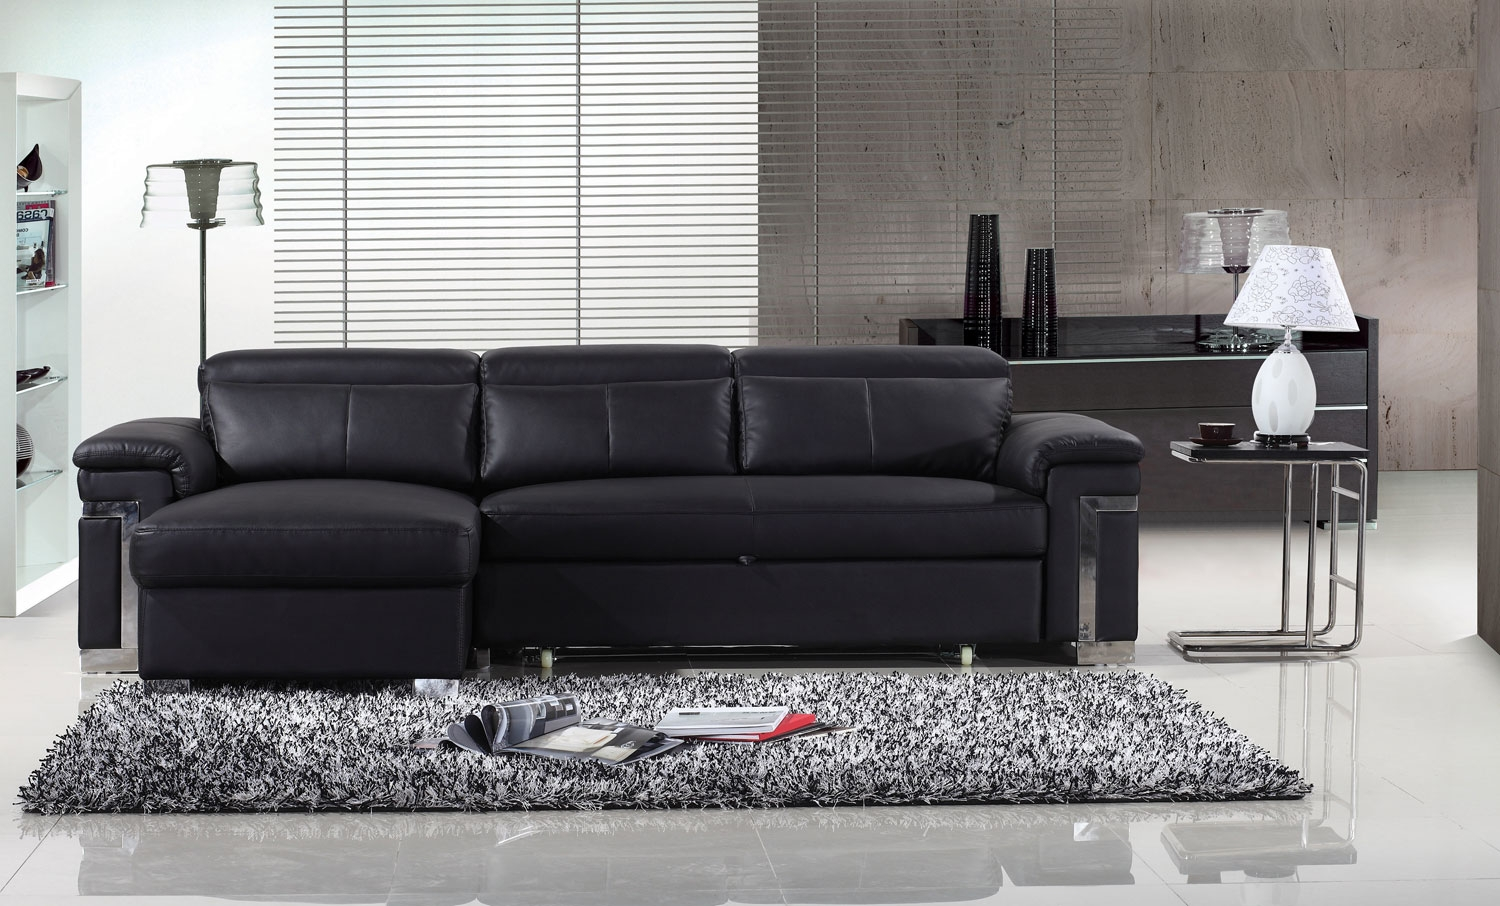 dual reclining sofa slipcover wall bed canada how to clean your black leather sofa?